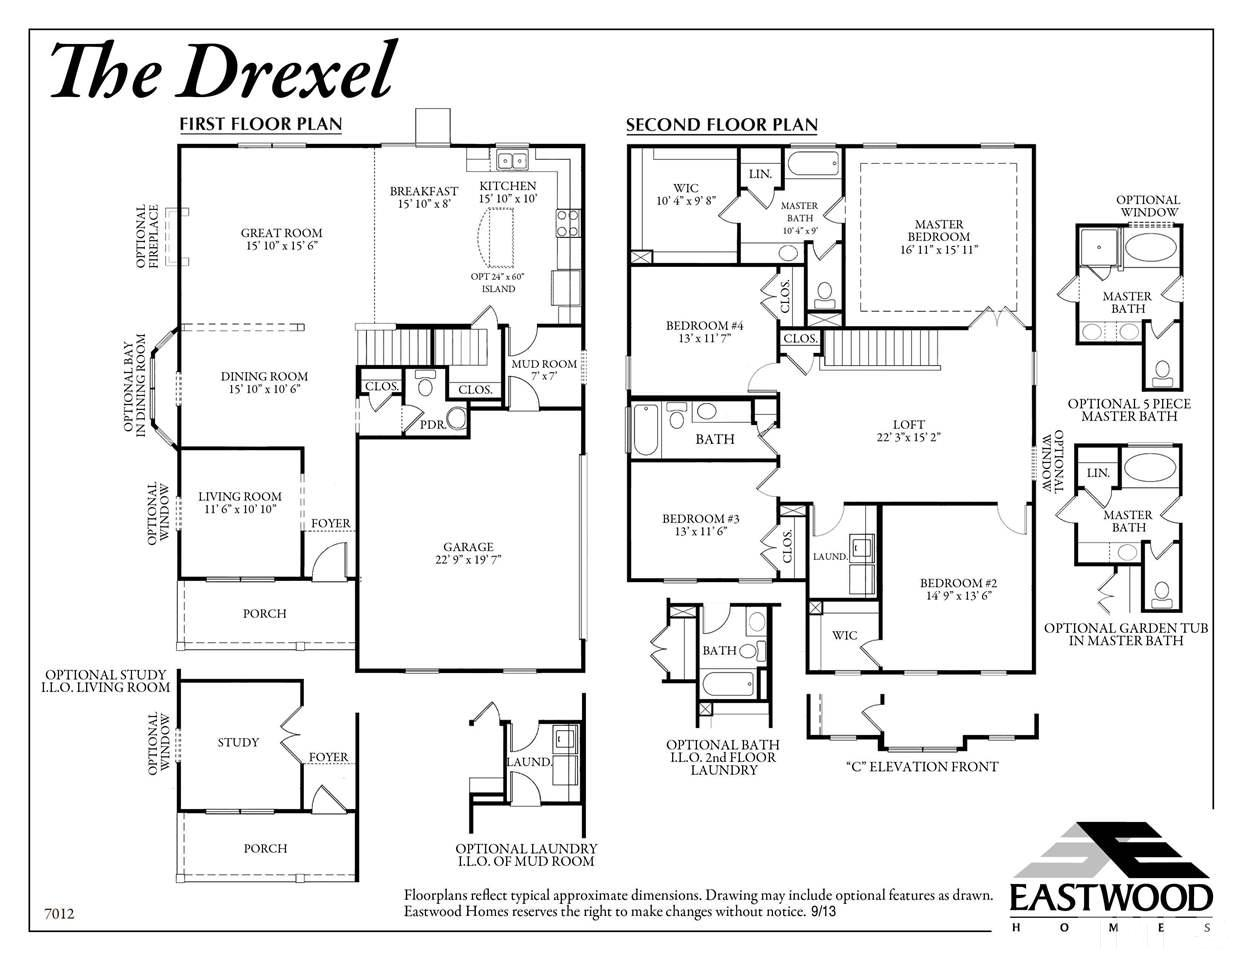 100 Charleston Homes Floor Plans – Eastwood Homes Raleigh Floor Plan